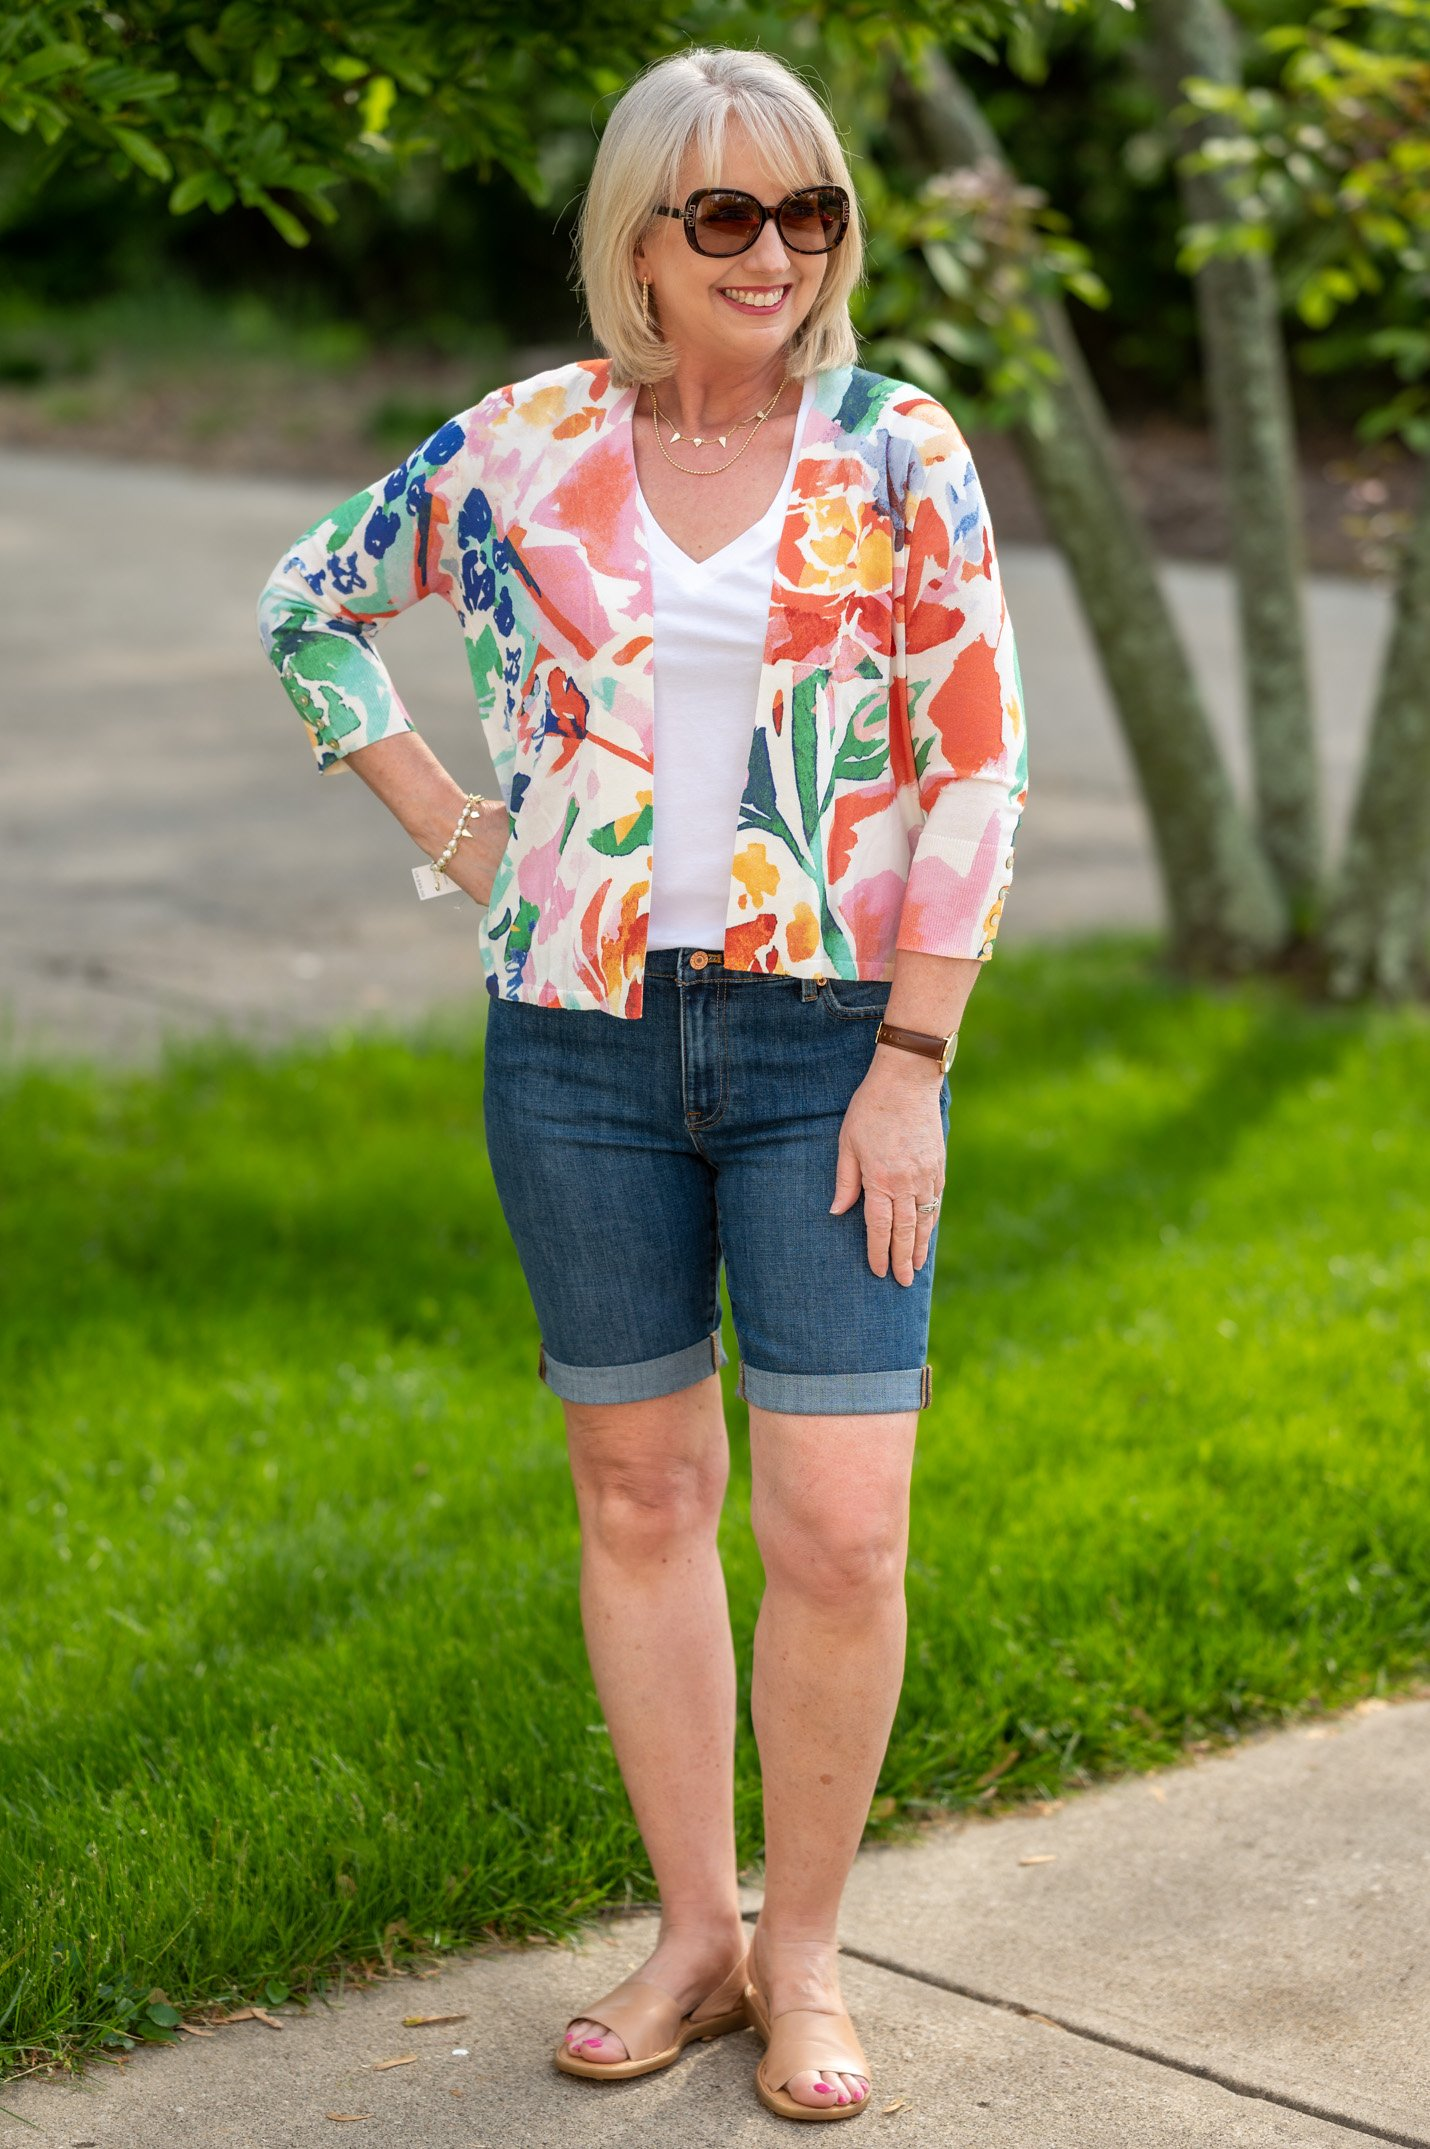 White Tee with Denim Shorts and Floral Cardi